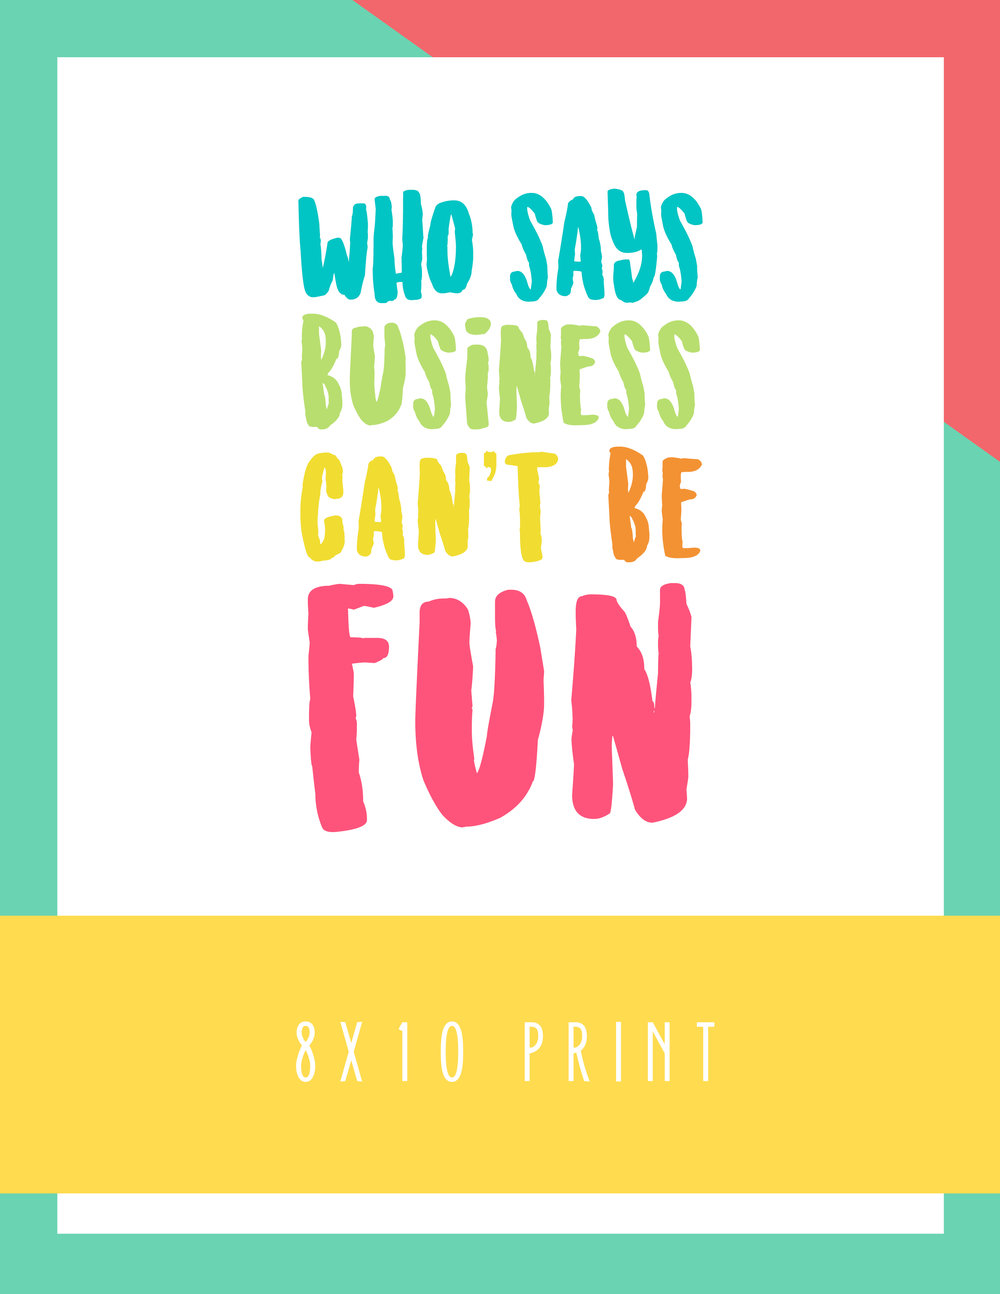 Bold & Pop Freebies : Who Says Business Can't be Fun 8x10 Print